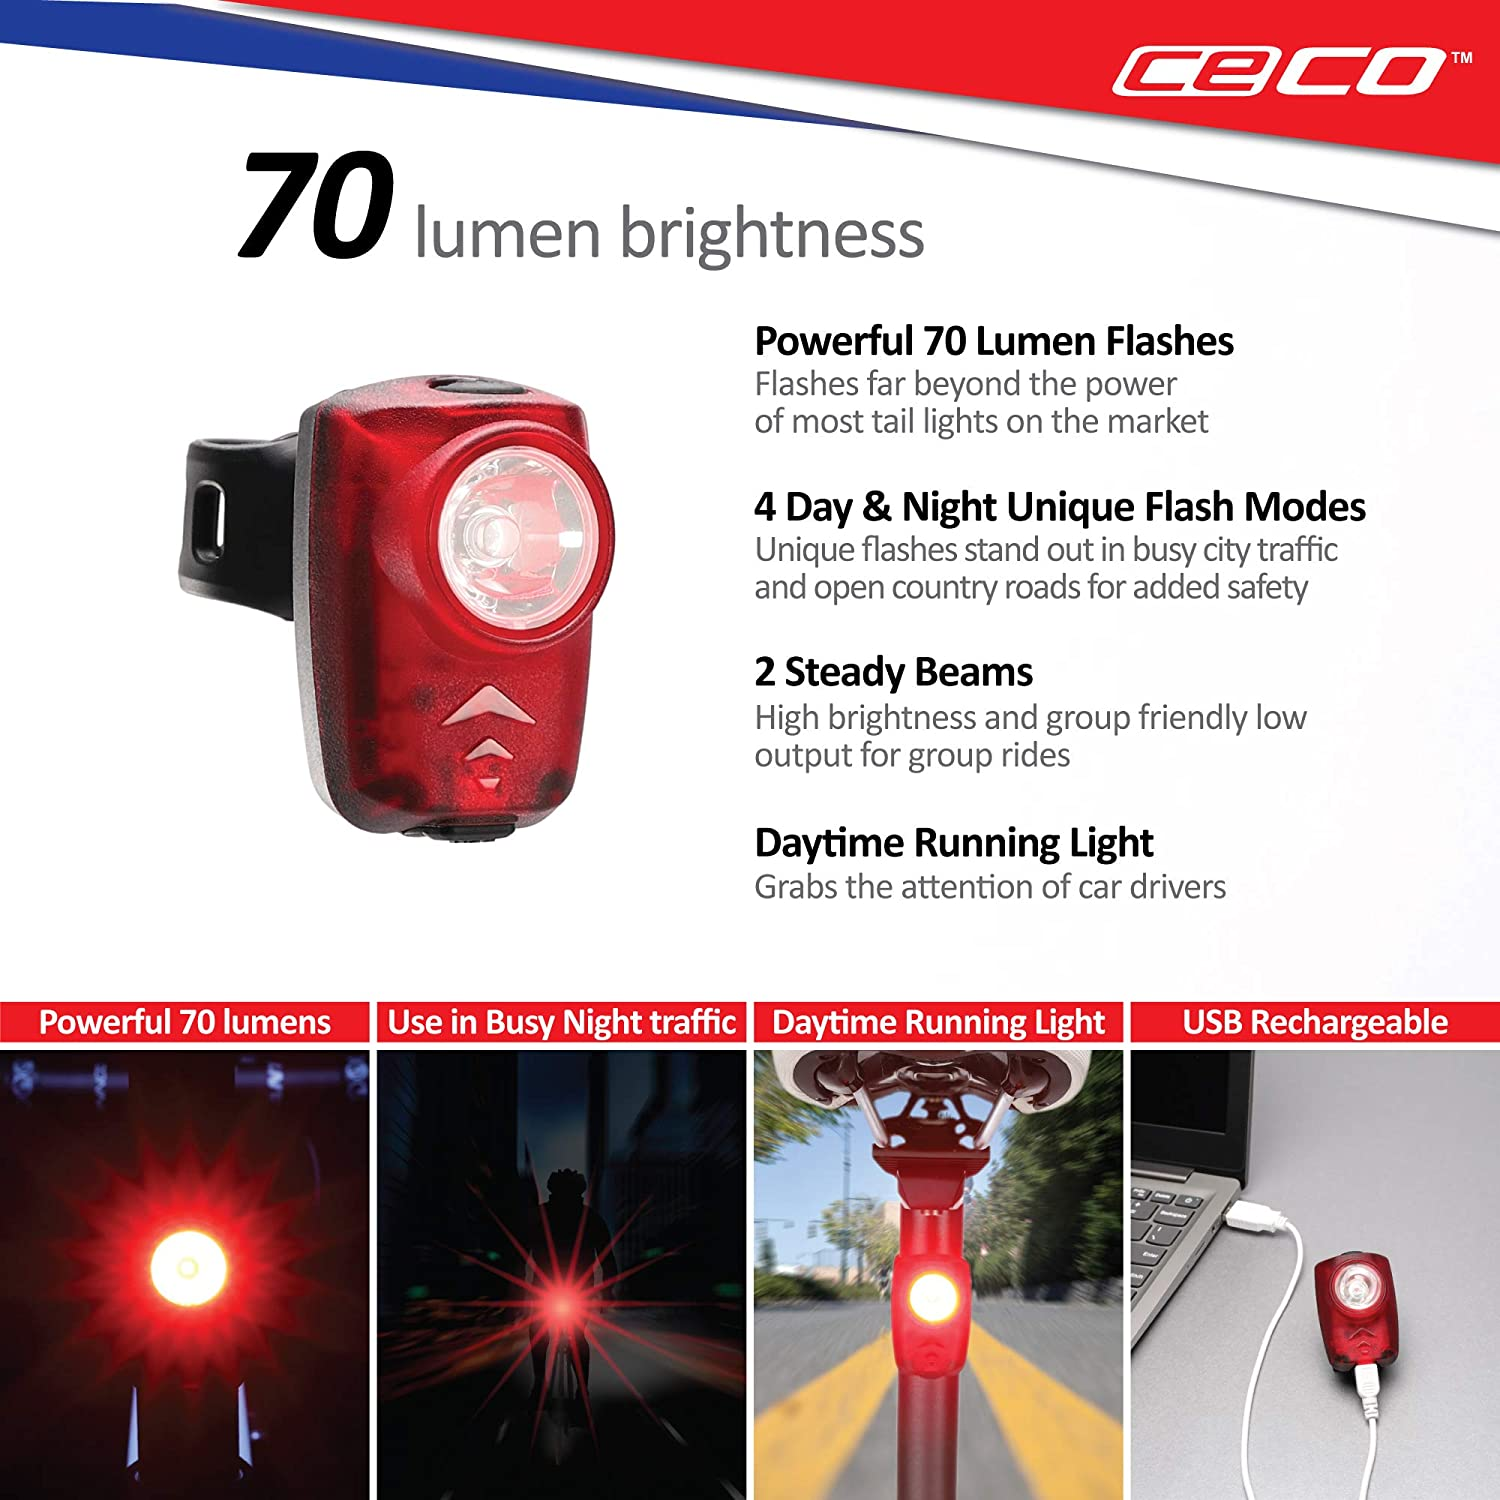 Super Bright Model T70 Bicycle Rear Light CECO-USA: 70 Lumen USB Rechargeable Bike Tail Light Pro Grade Quality Bike Tail Light Red Safety Light FL-1 Impact Resistant IP67 Waterproof